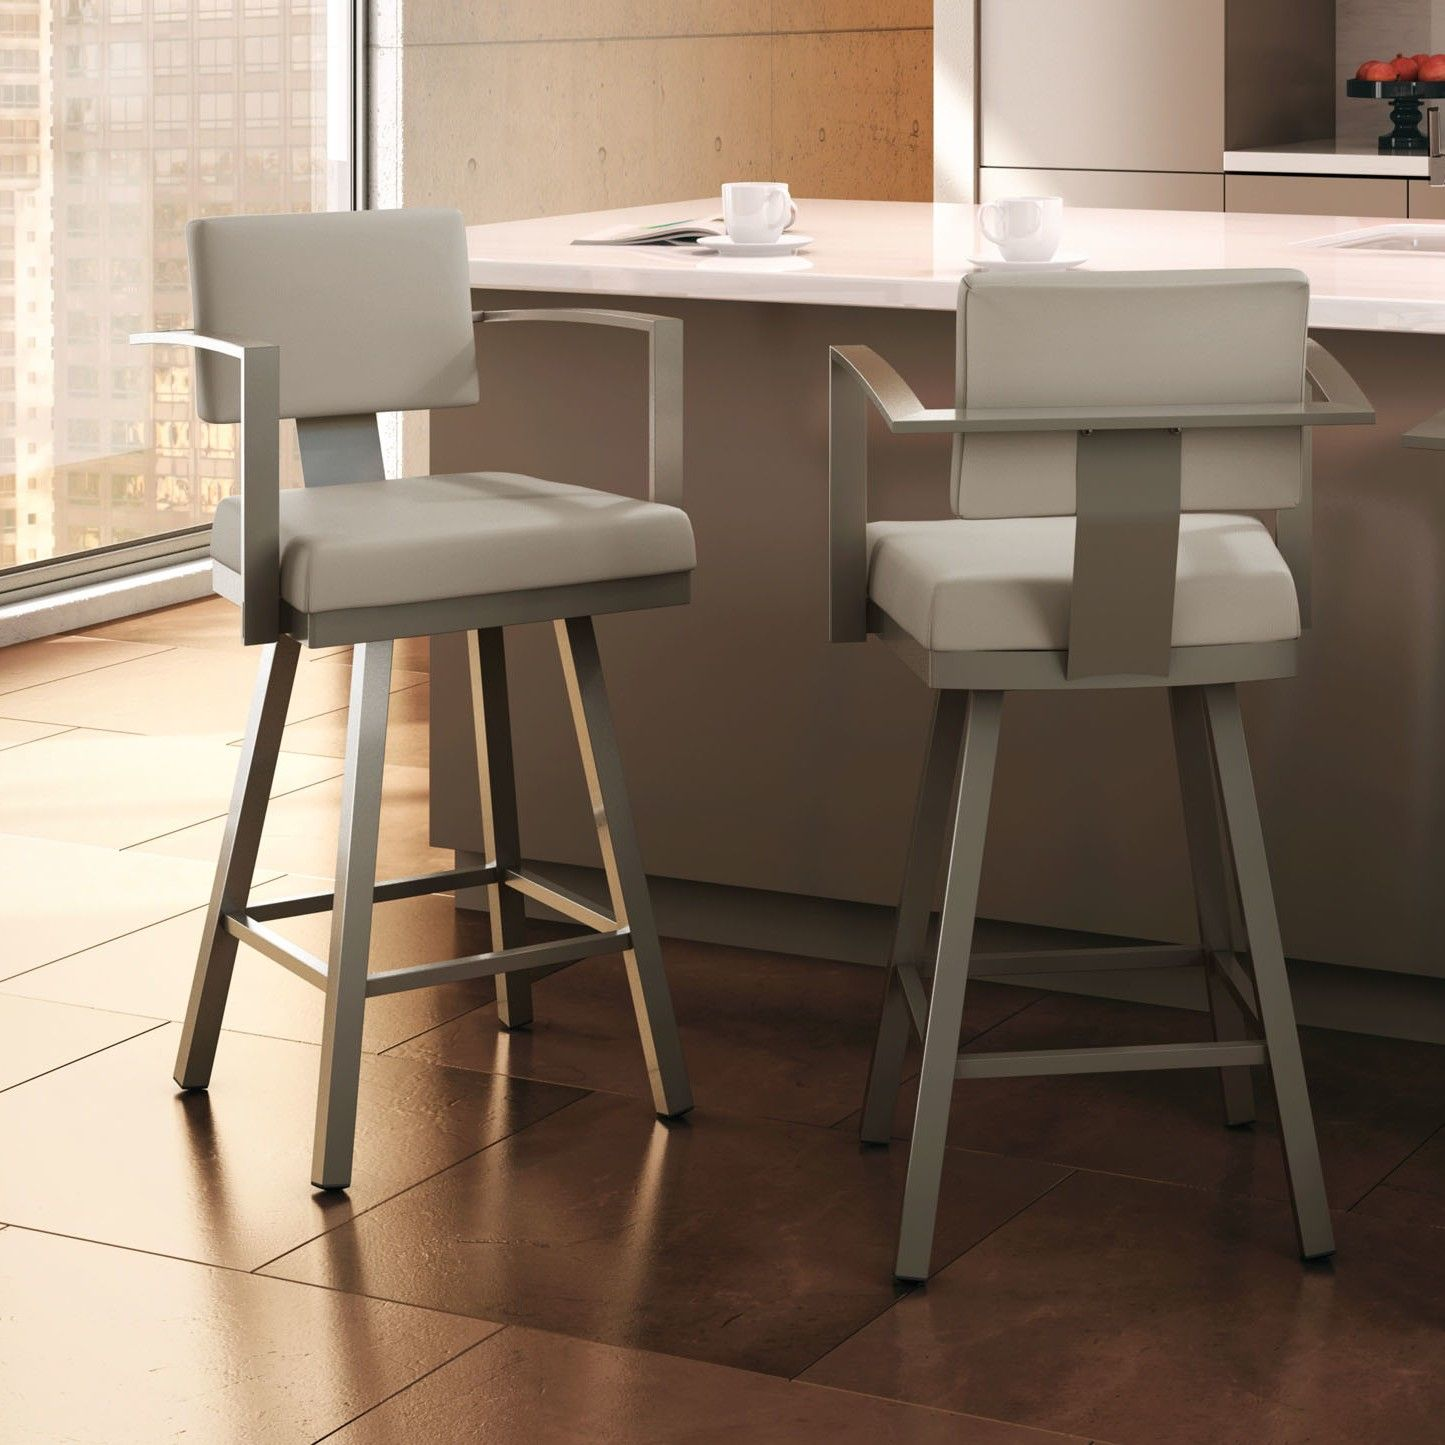 Amisco Akers Swivel Counter Stool with Arms 26 in. - Create a modern metropolitan atmosphere in your home with the Amisco Akers Swivel Counter Stool with ... & Isaac Swivel Bar u0026 Counter Stool | Bar counter Counter stool and ... islam-shia.org